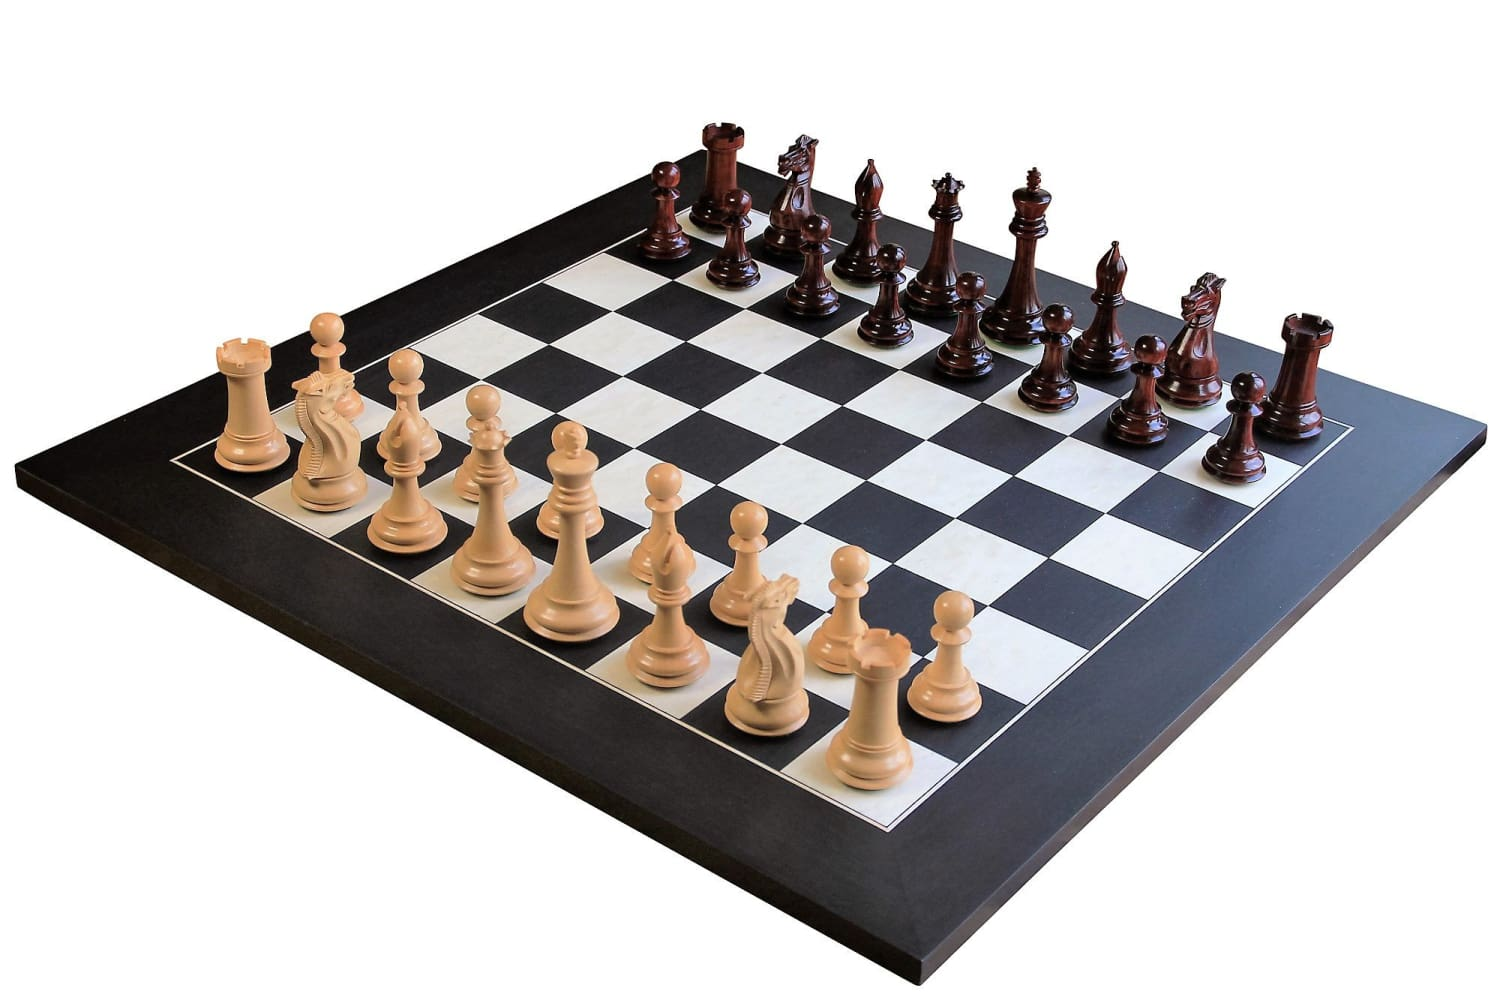 Luxury Chess Sets, Chessboards, Boxes Favourites at Official Staunton